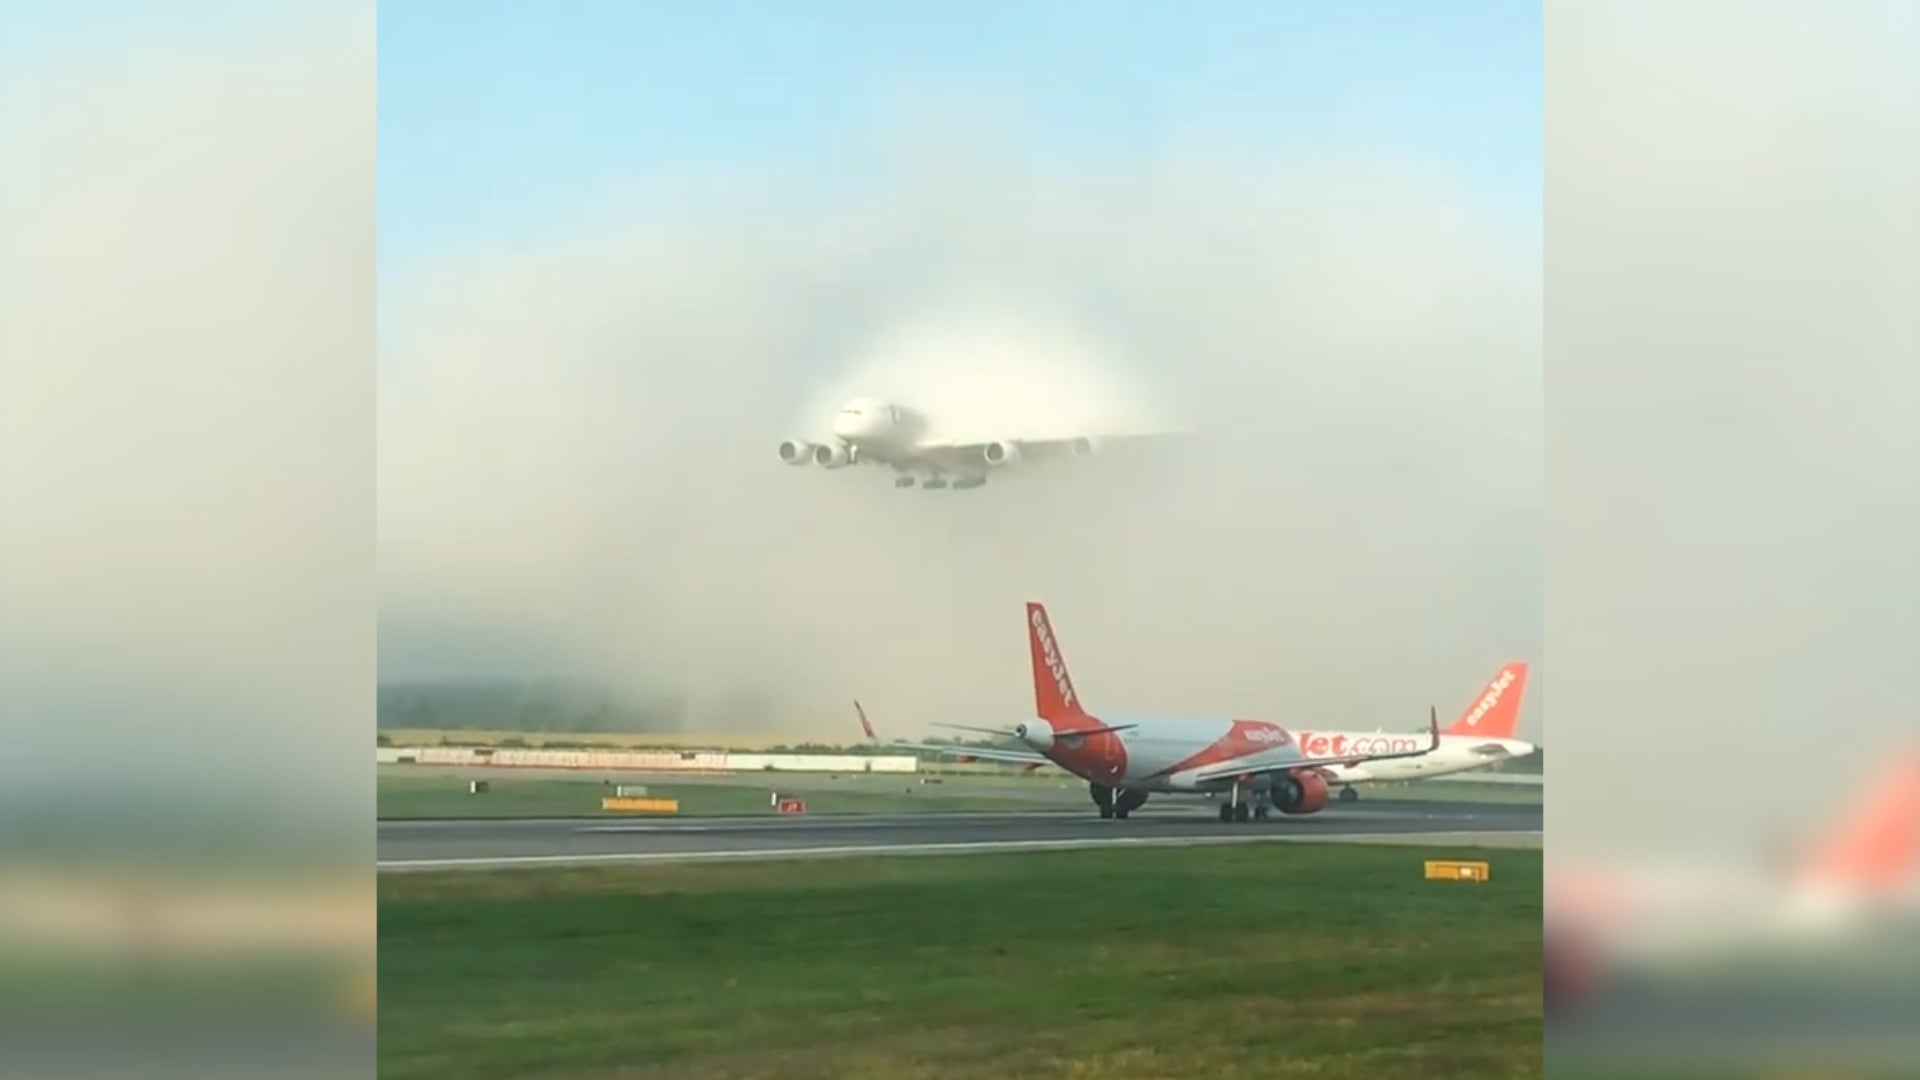 Emirates A380 flies through blanket of fog to land on runway in 'majestic' footage